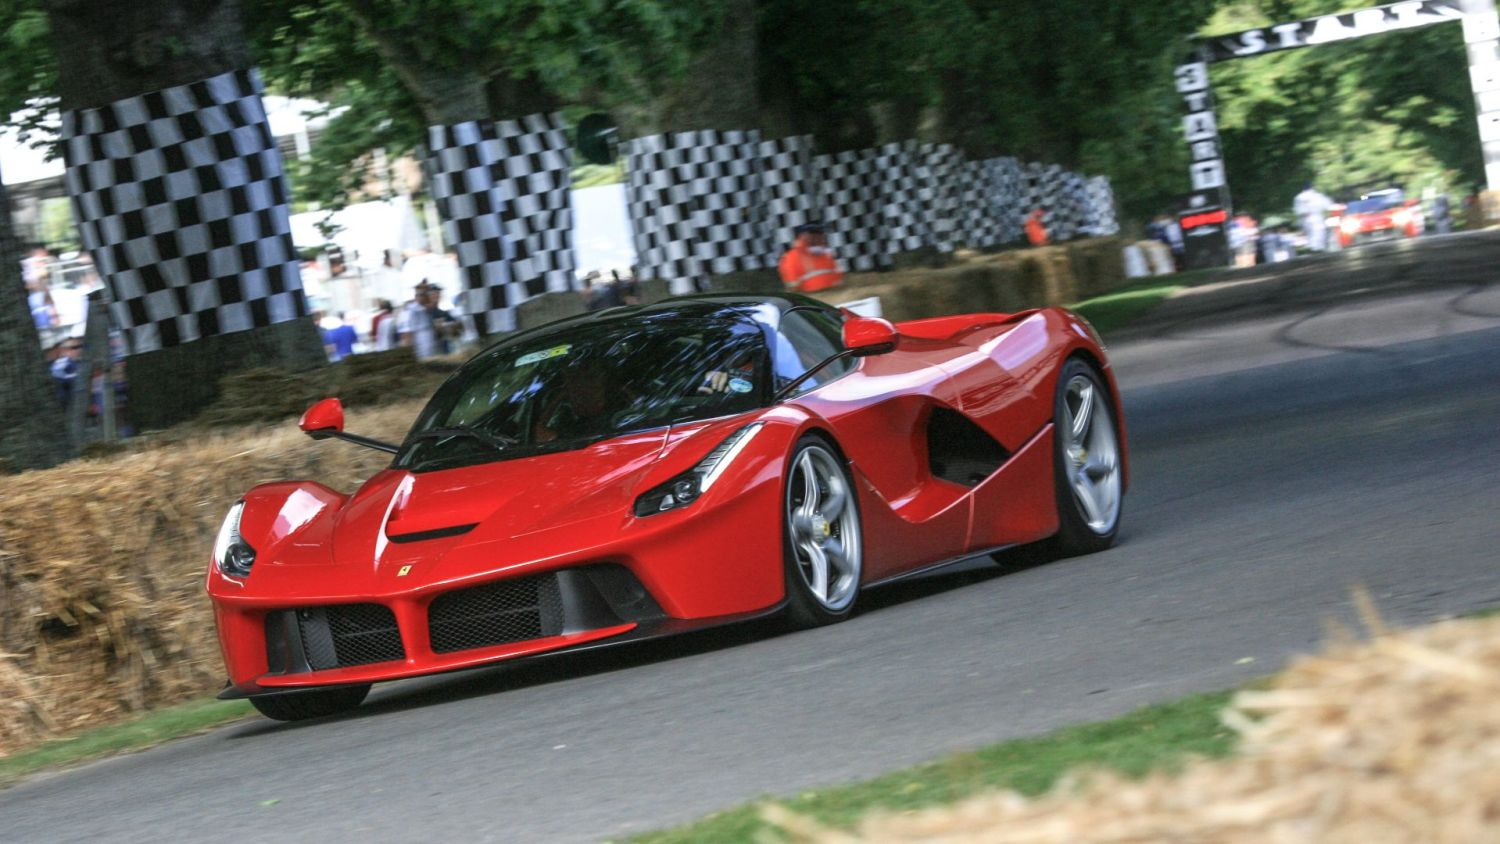 Most popular supercars on Instagram